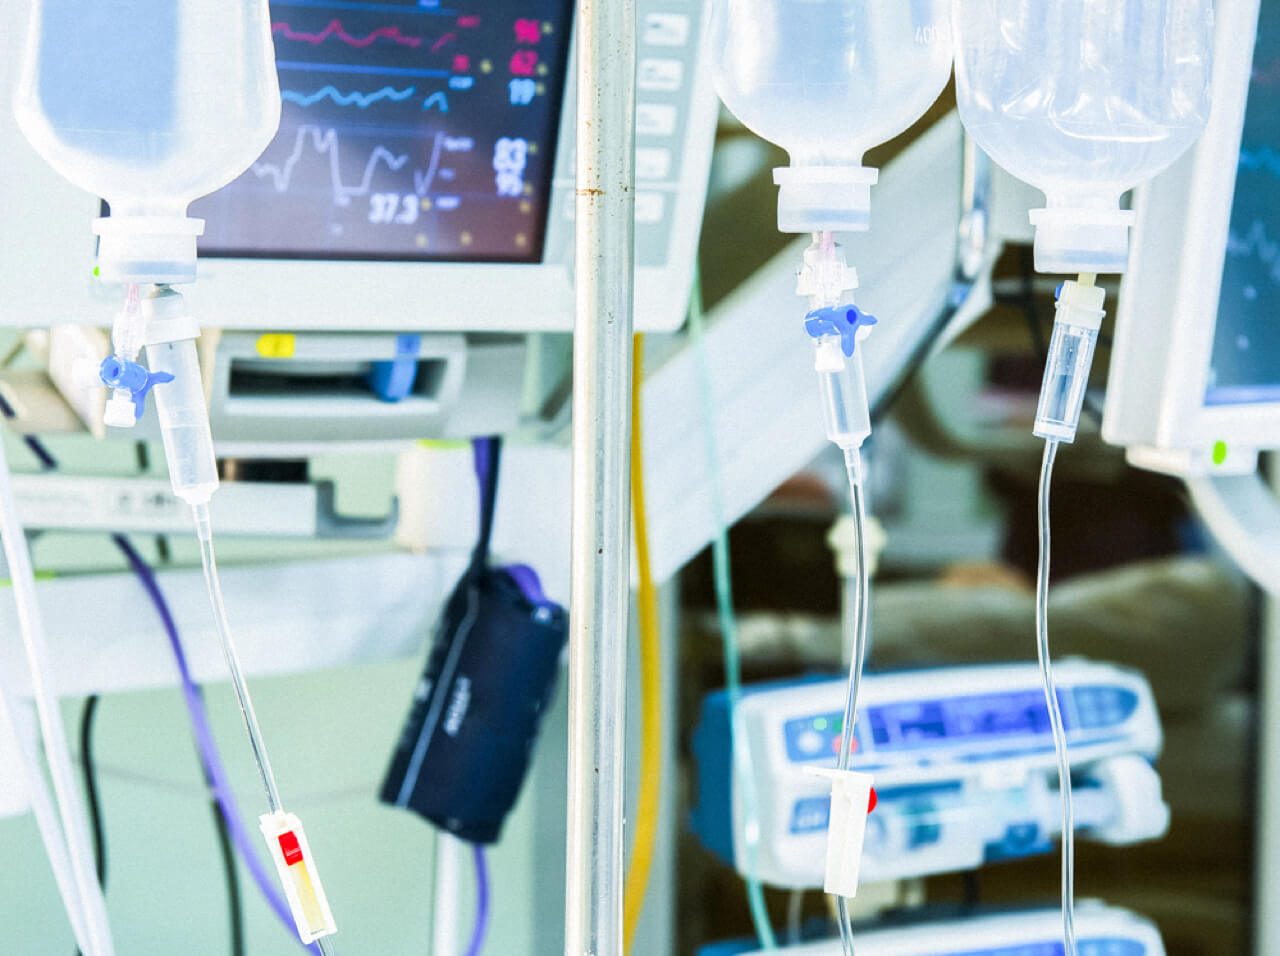 IV bags and heart rate monitor in a hospital setting. Close-up.